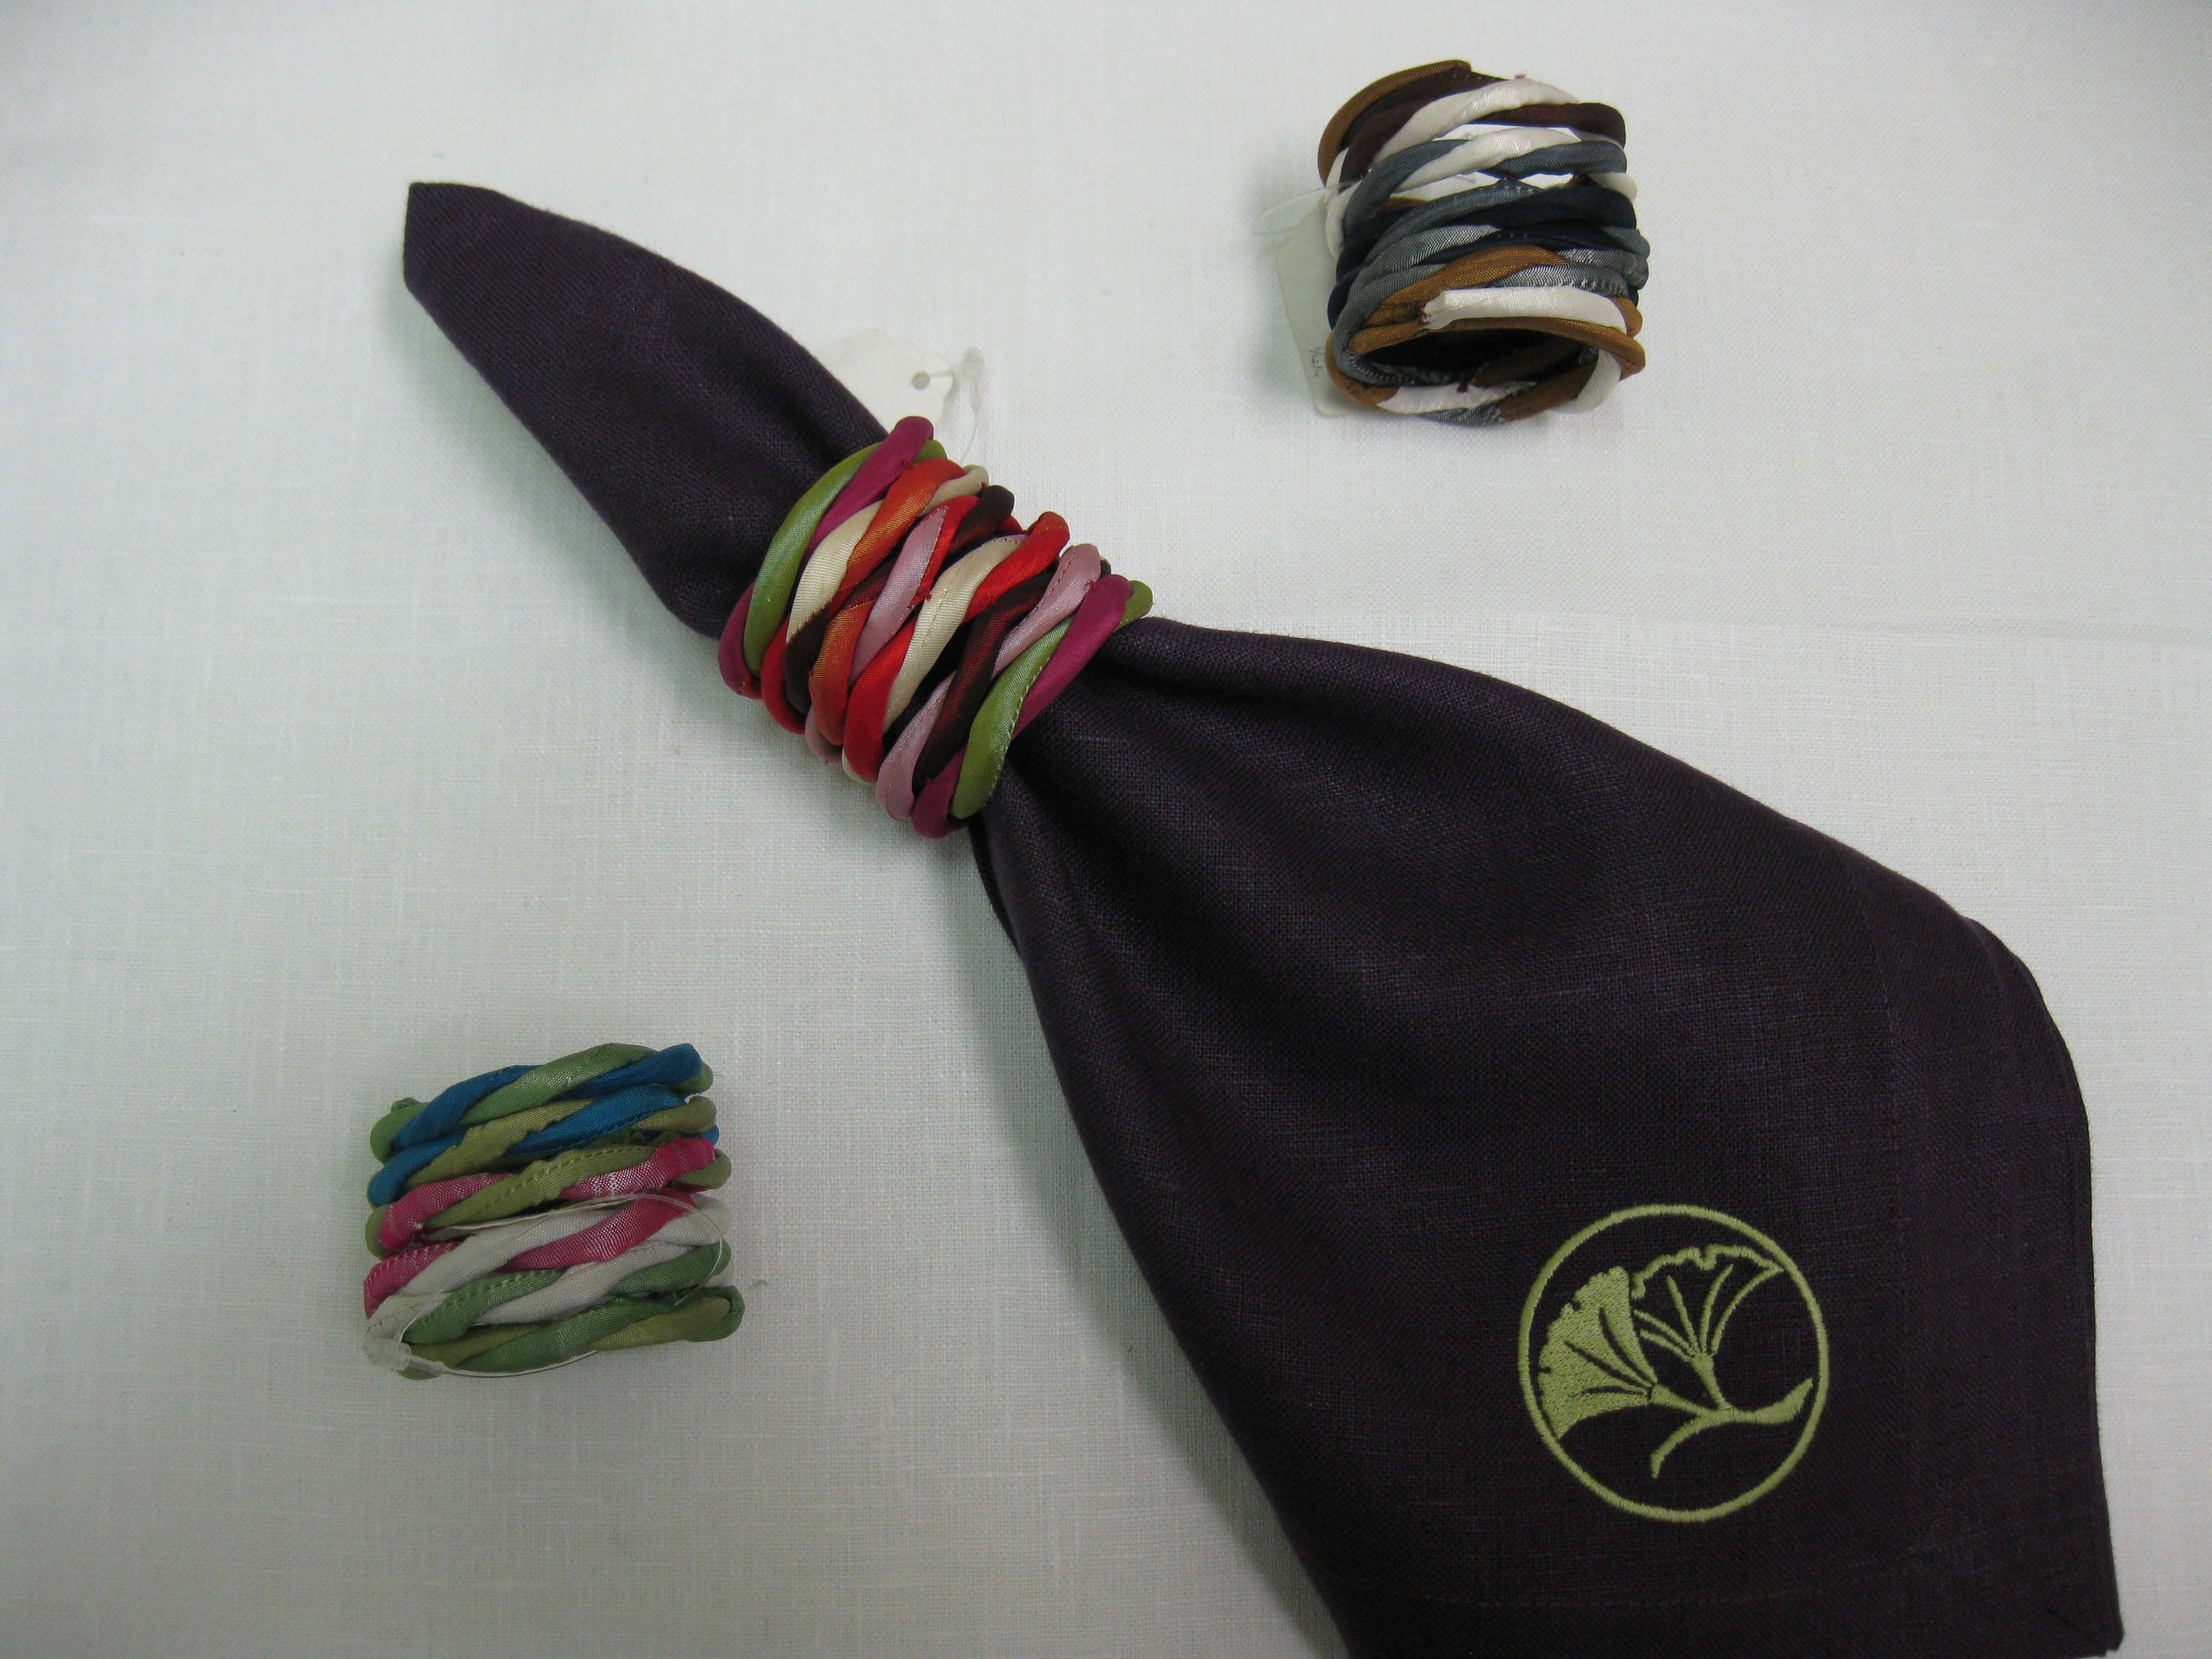 Napkin Rings From Left to Right:  Bright Multi Blue and Green, Bright Multi Reds and Natural Multi Napkin Plum with Embroidered Kiwi Ginko